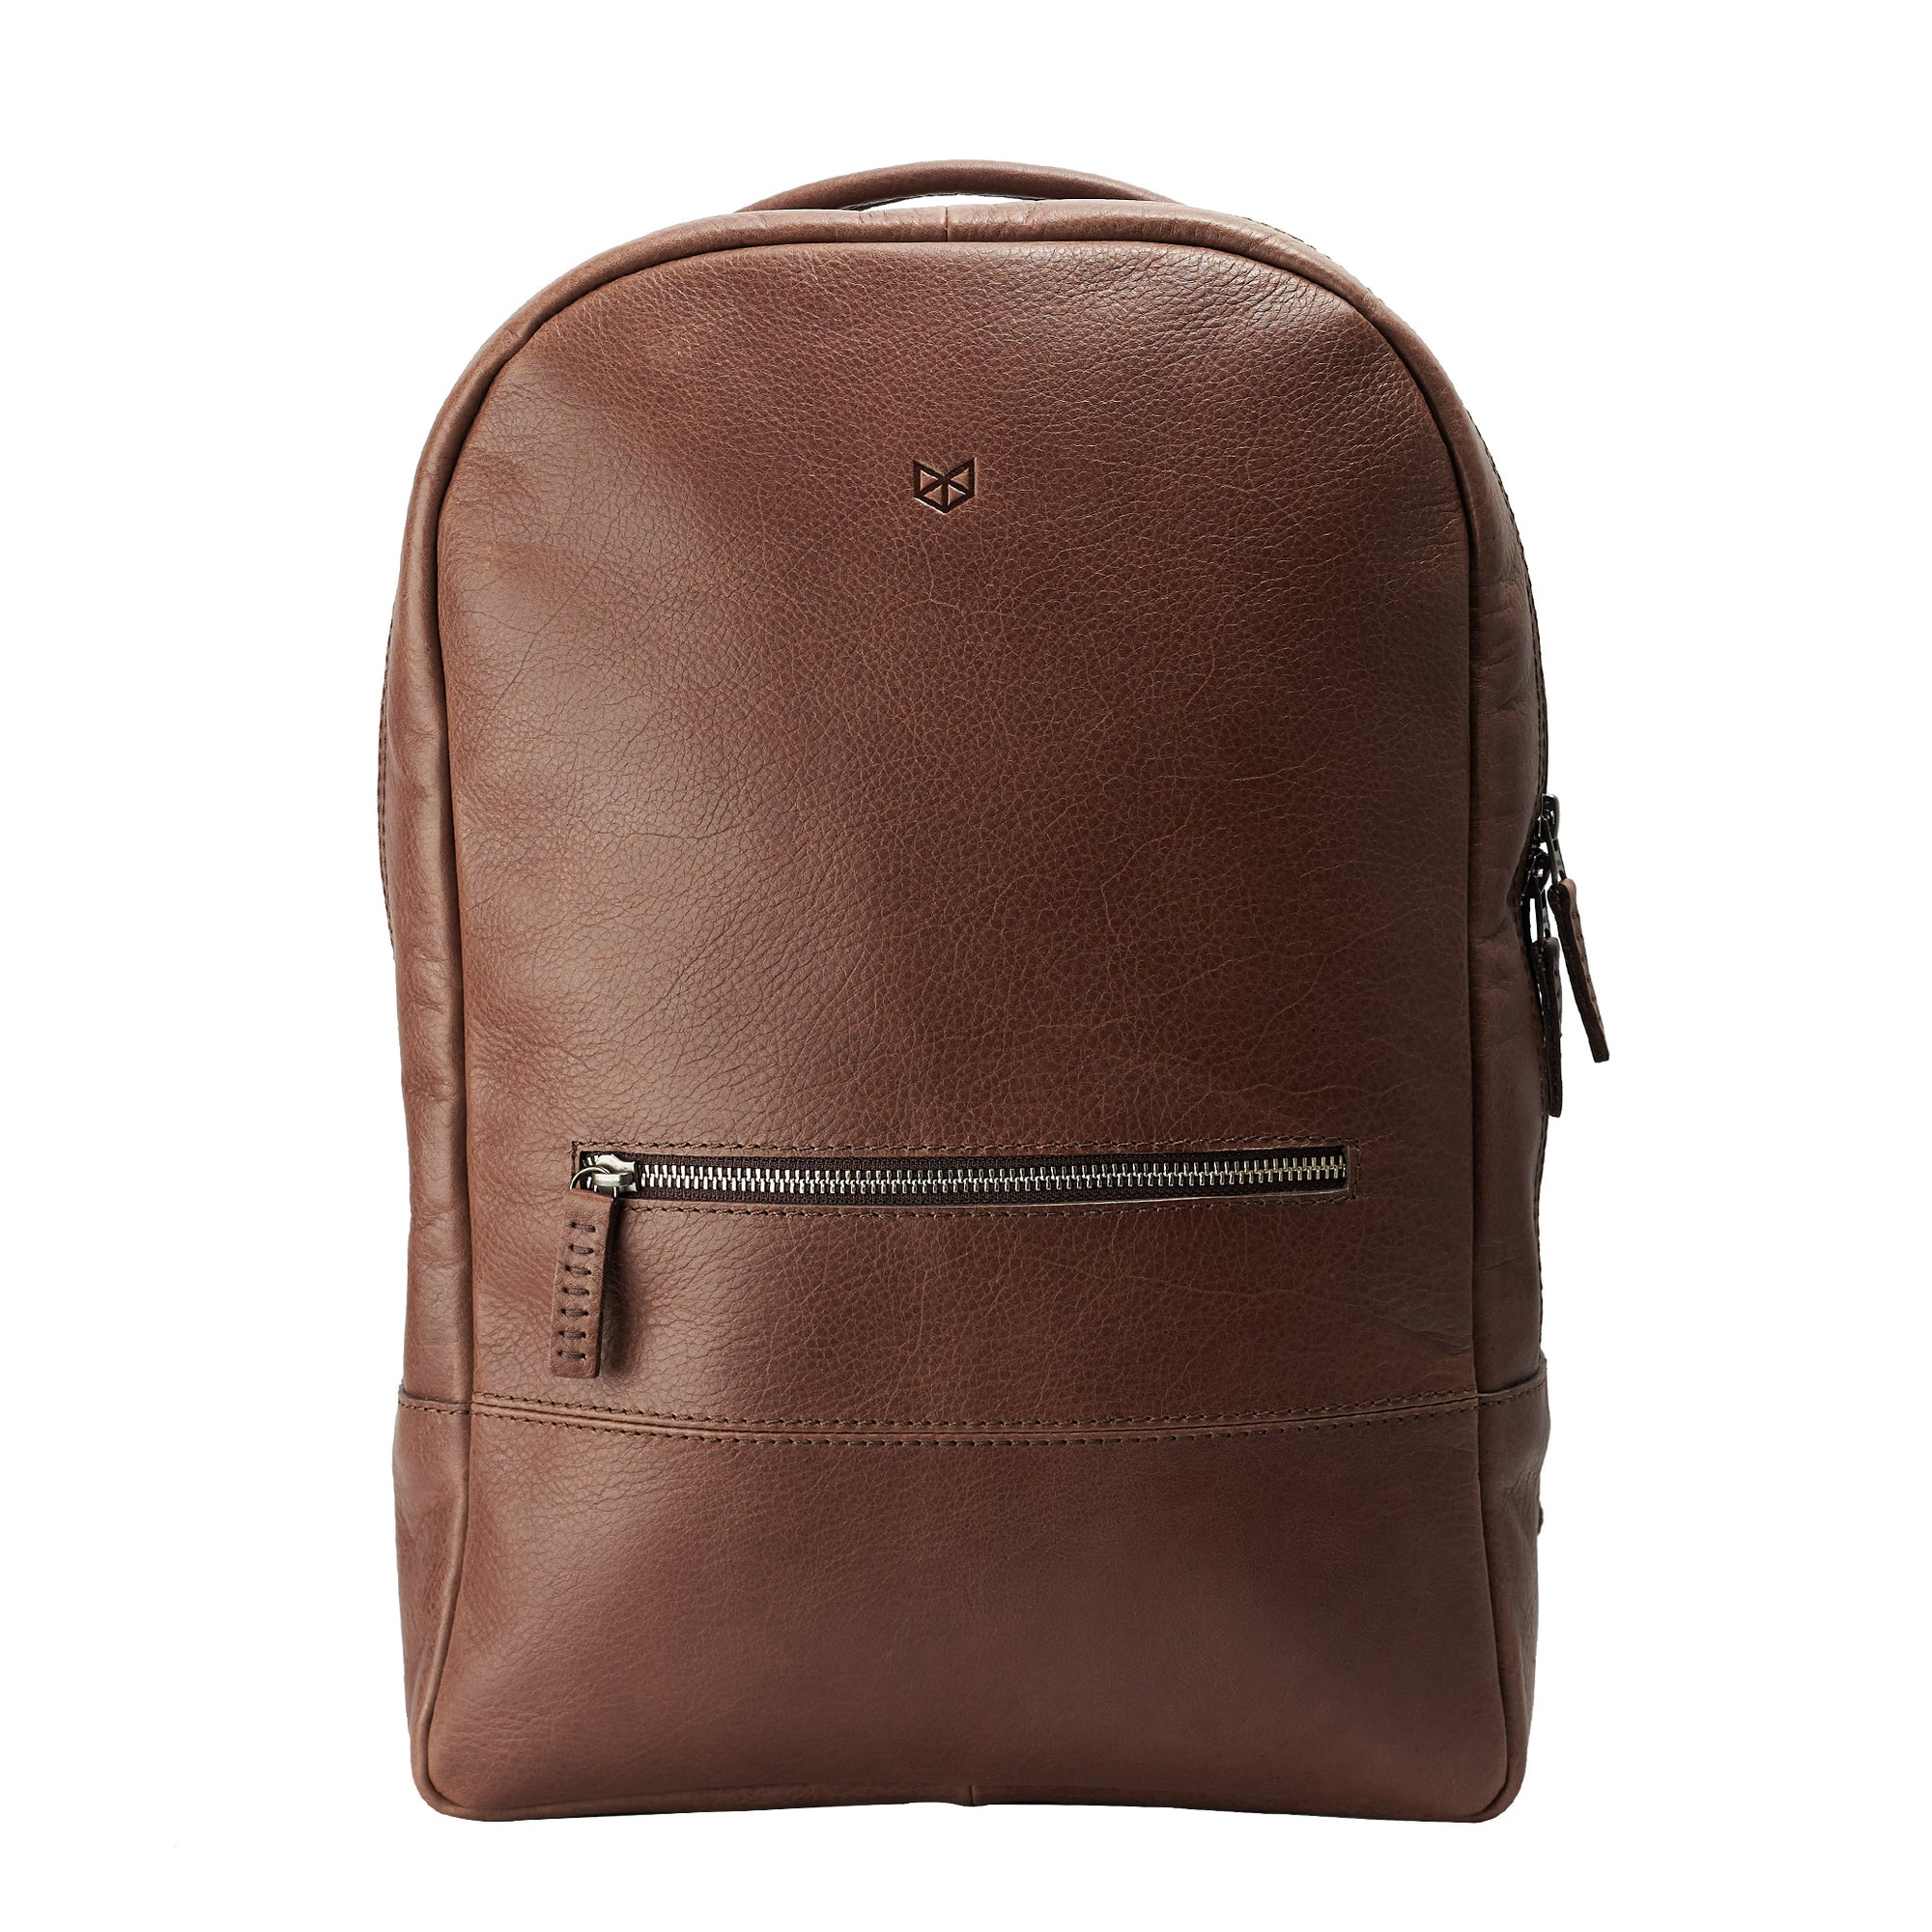 Handmade cool leather backpack for men. Mens leather bags 09fea24a7264